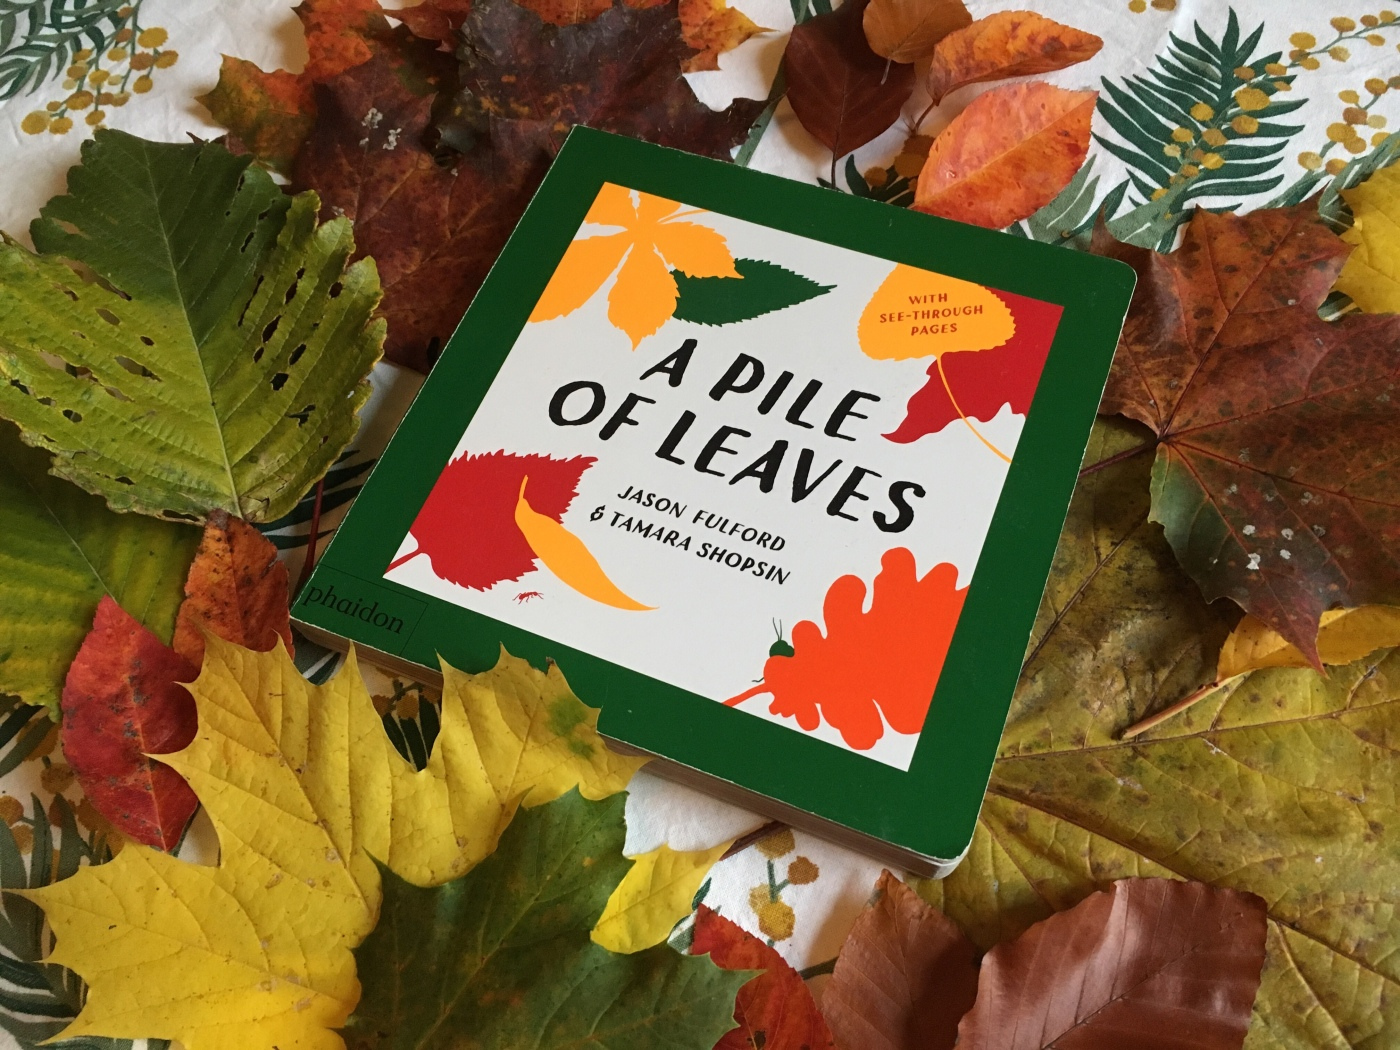 A Pile of Leaves by Jason Fulford and Tamara Shopsin.